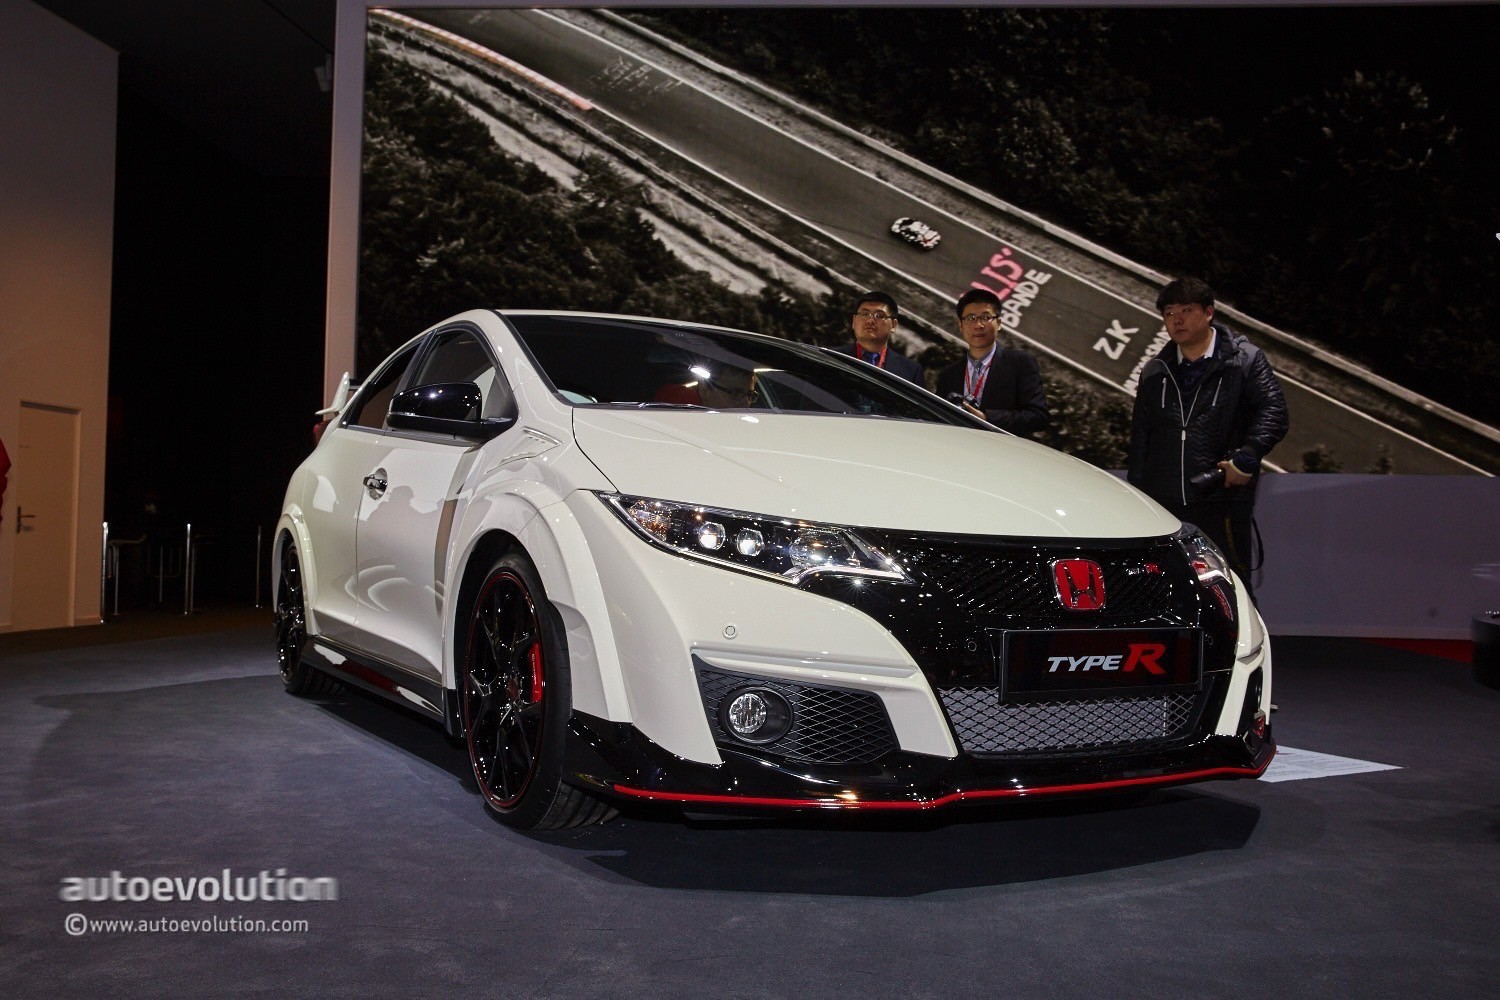 2015 honda civic type r bows in geneva laps the nurburgring in 7 video live photos. Black Bedroom Furniture Sets. Home Design Ideas